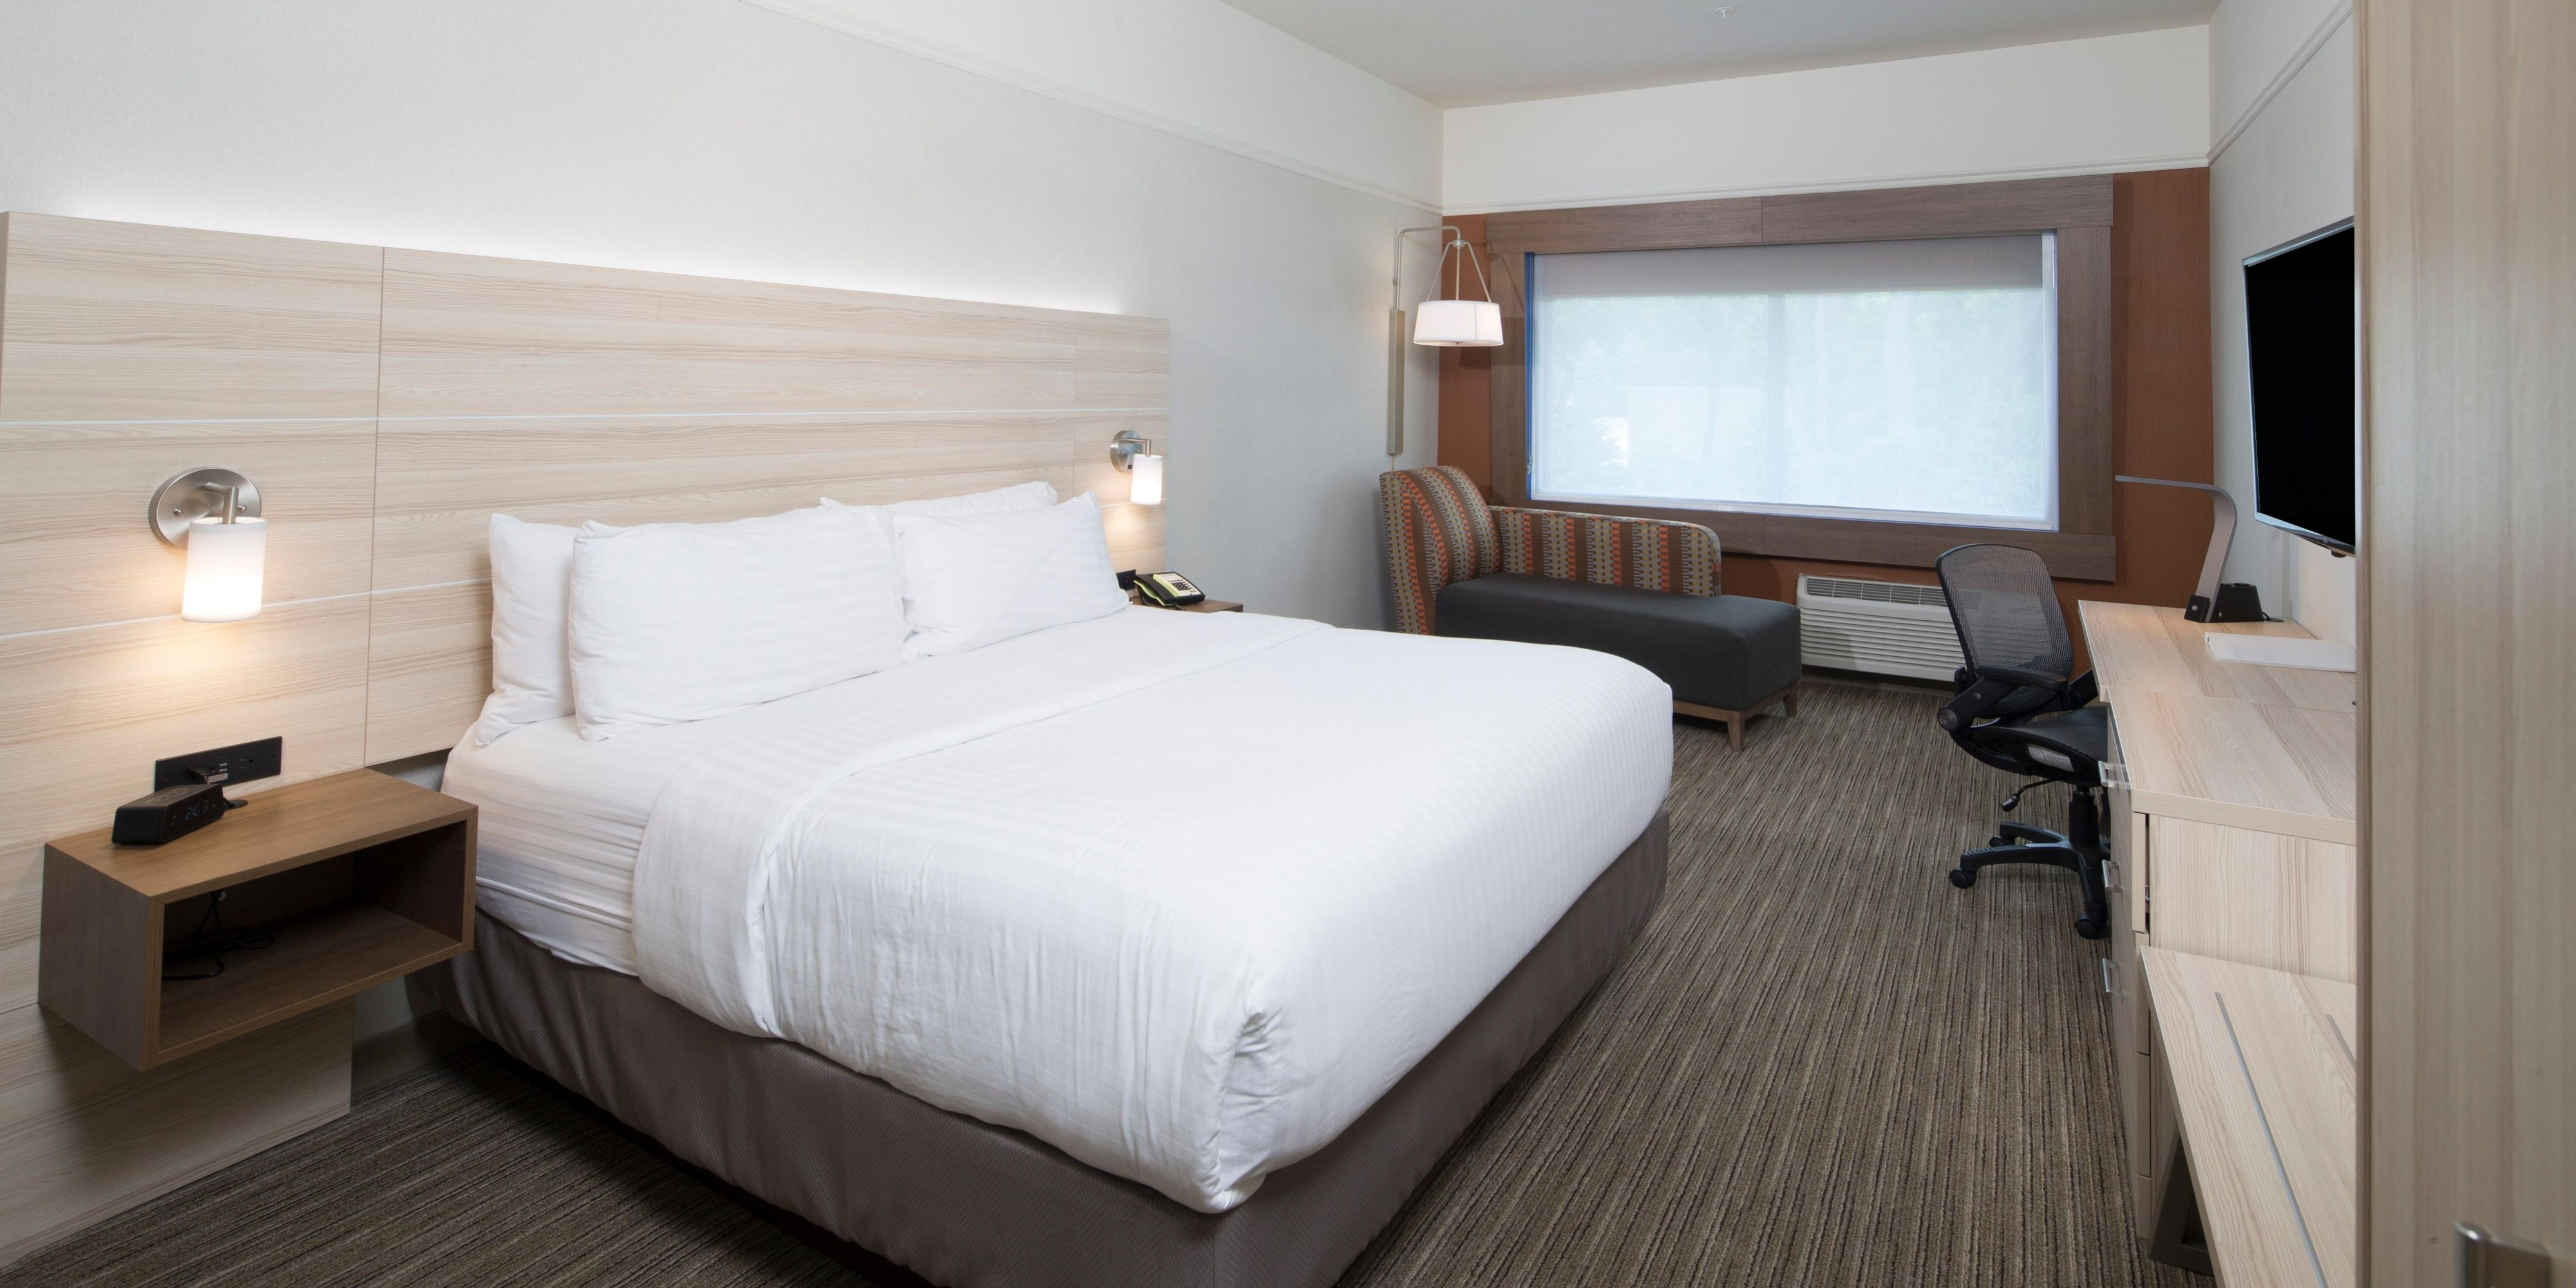 Hotels in LaPorte Indiana Holiday Inn Express & Suites